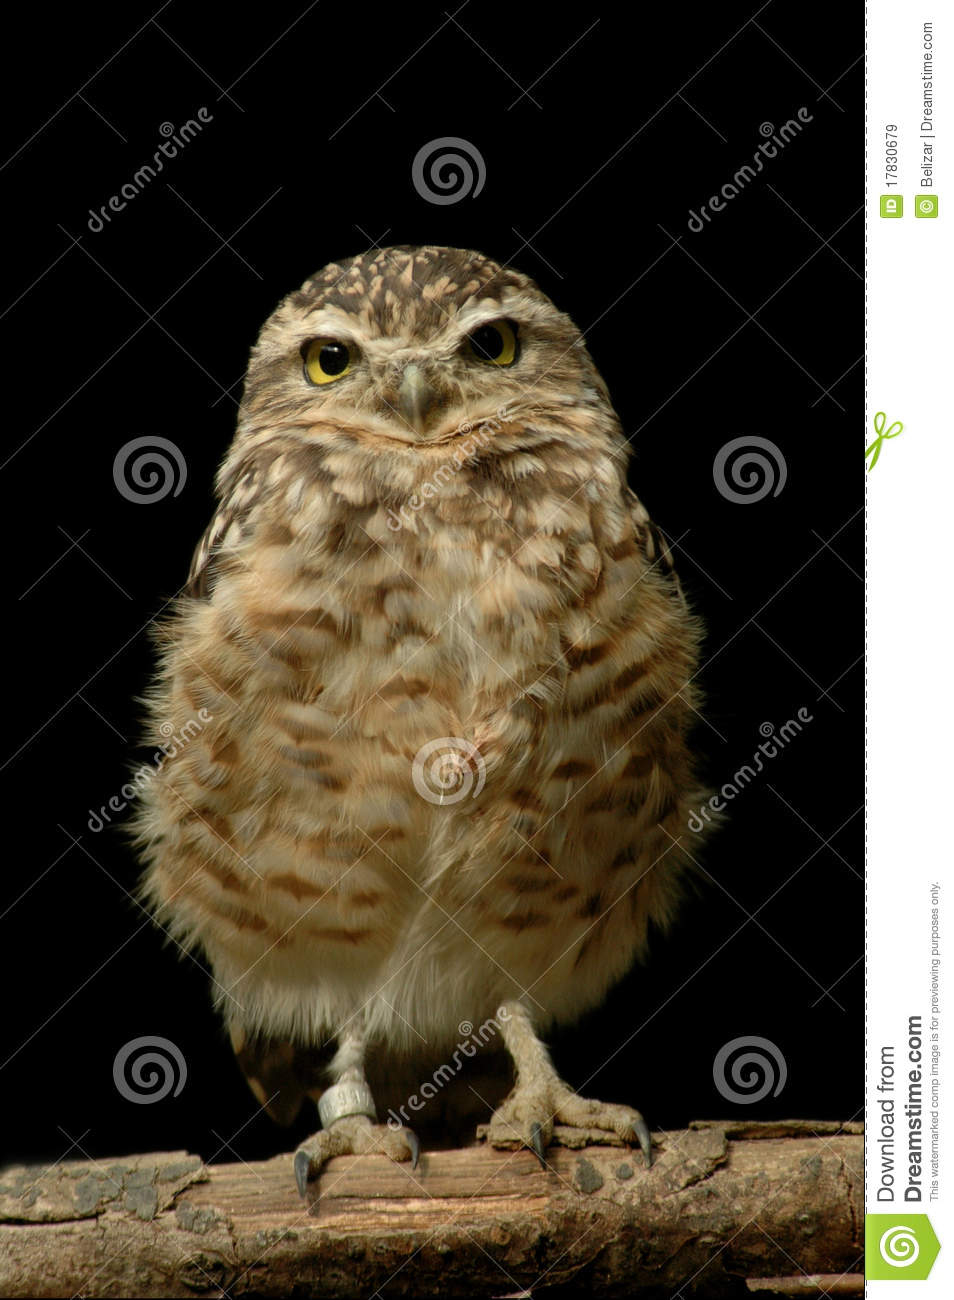 Burrowing Owl (Athene cunicularia) isolated